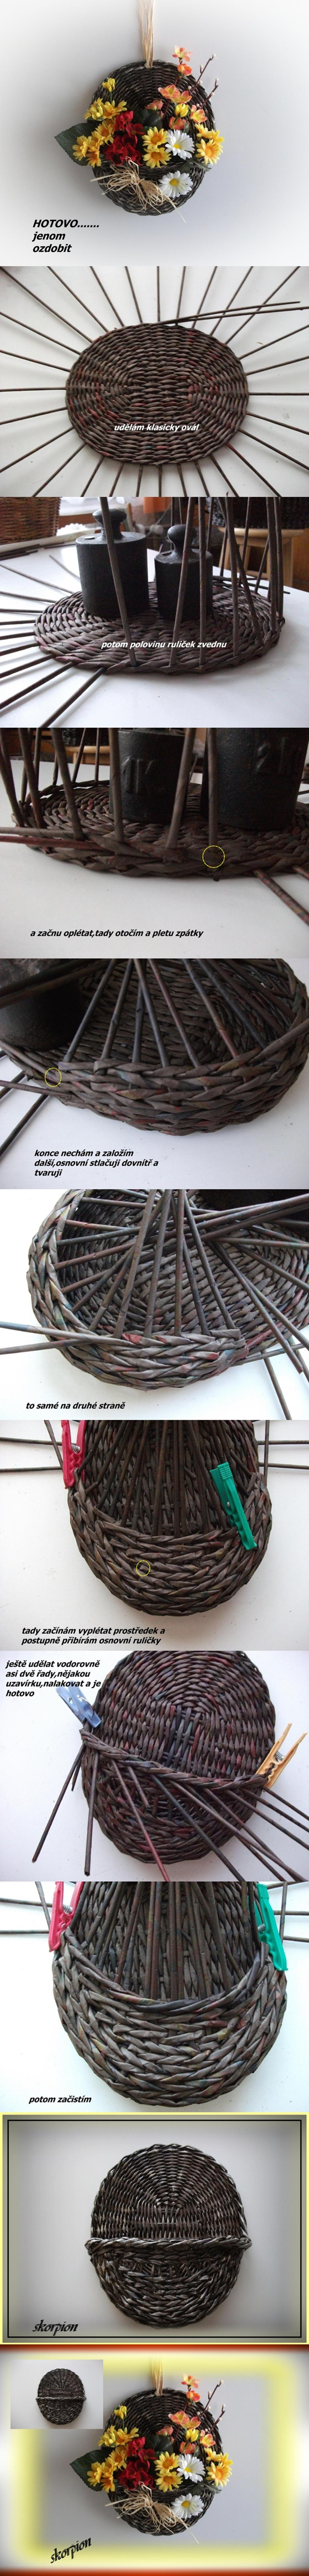 woven hanging planter tutorial